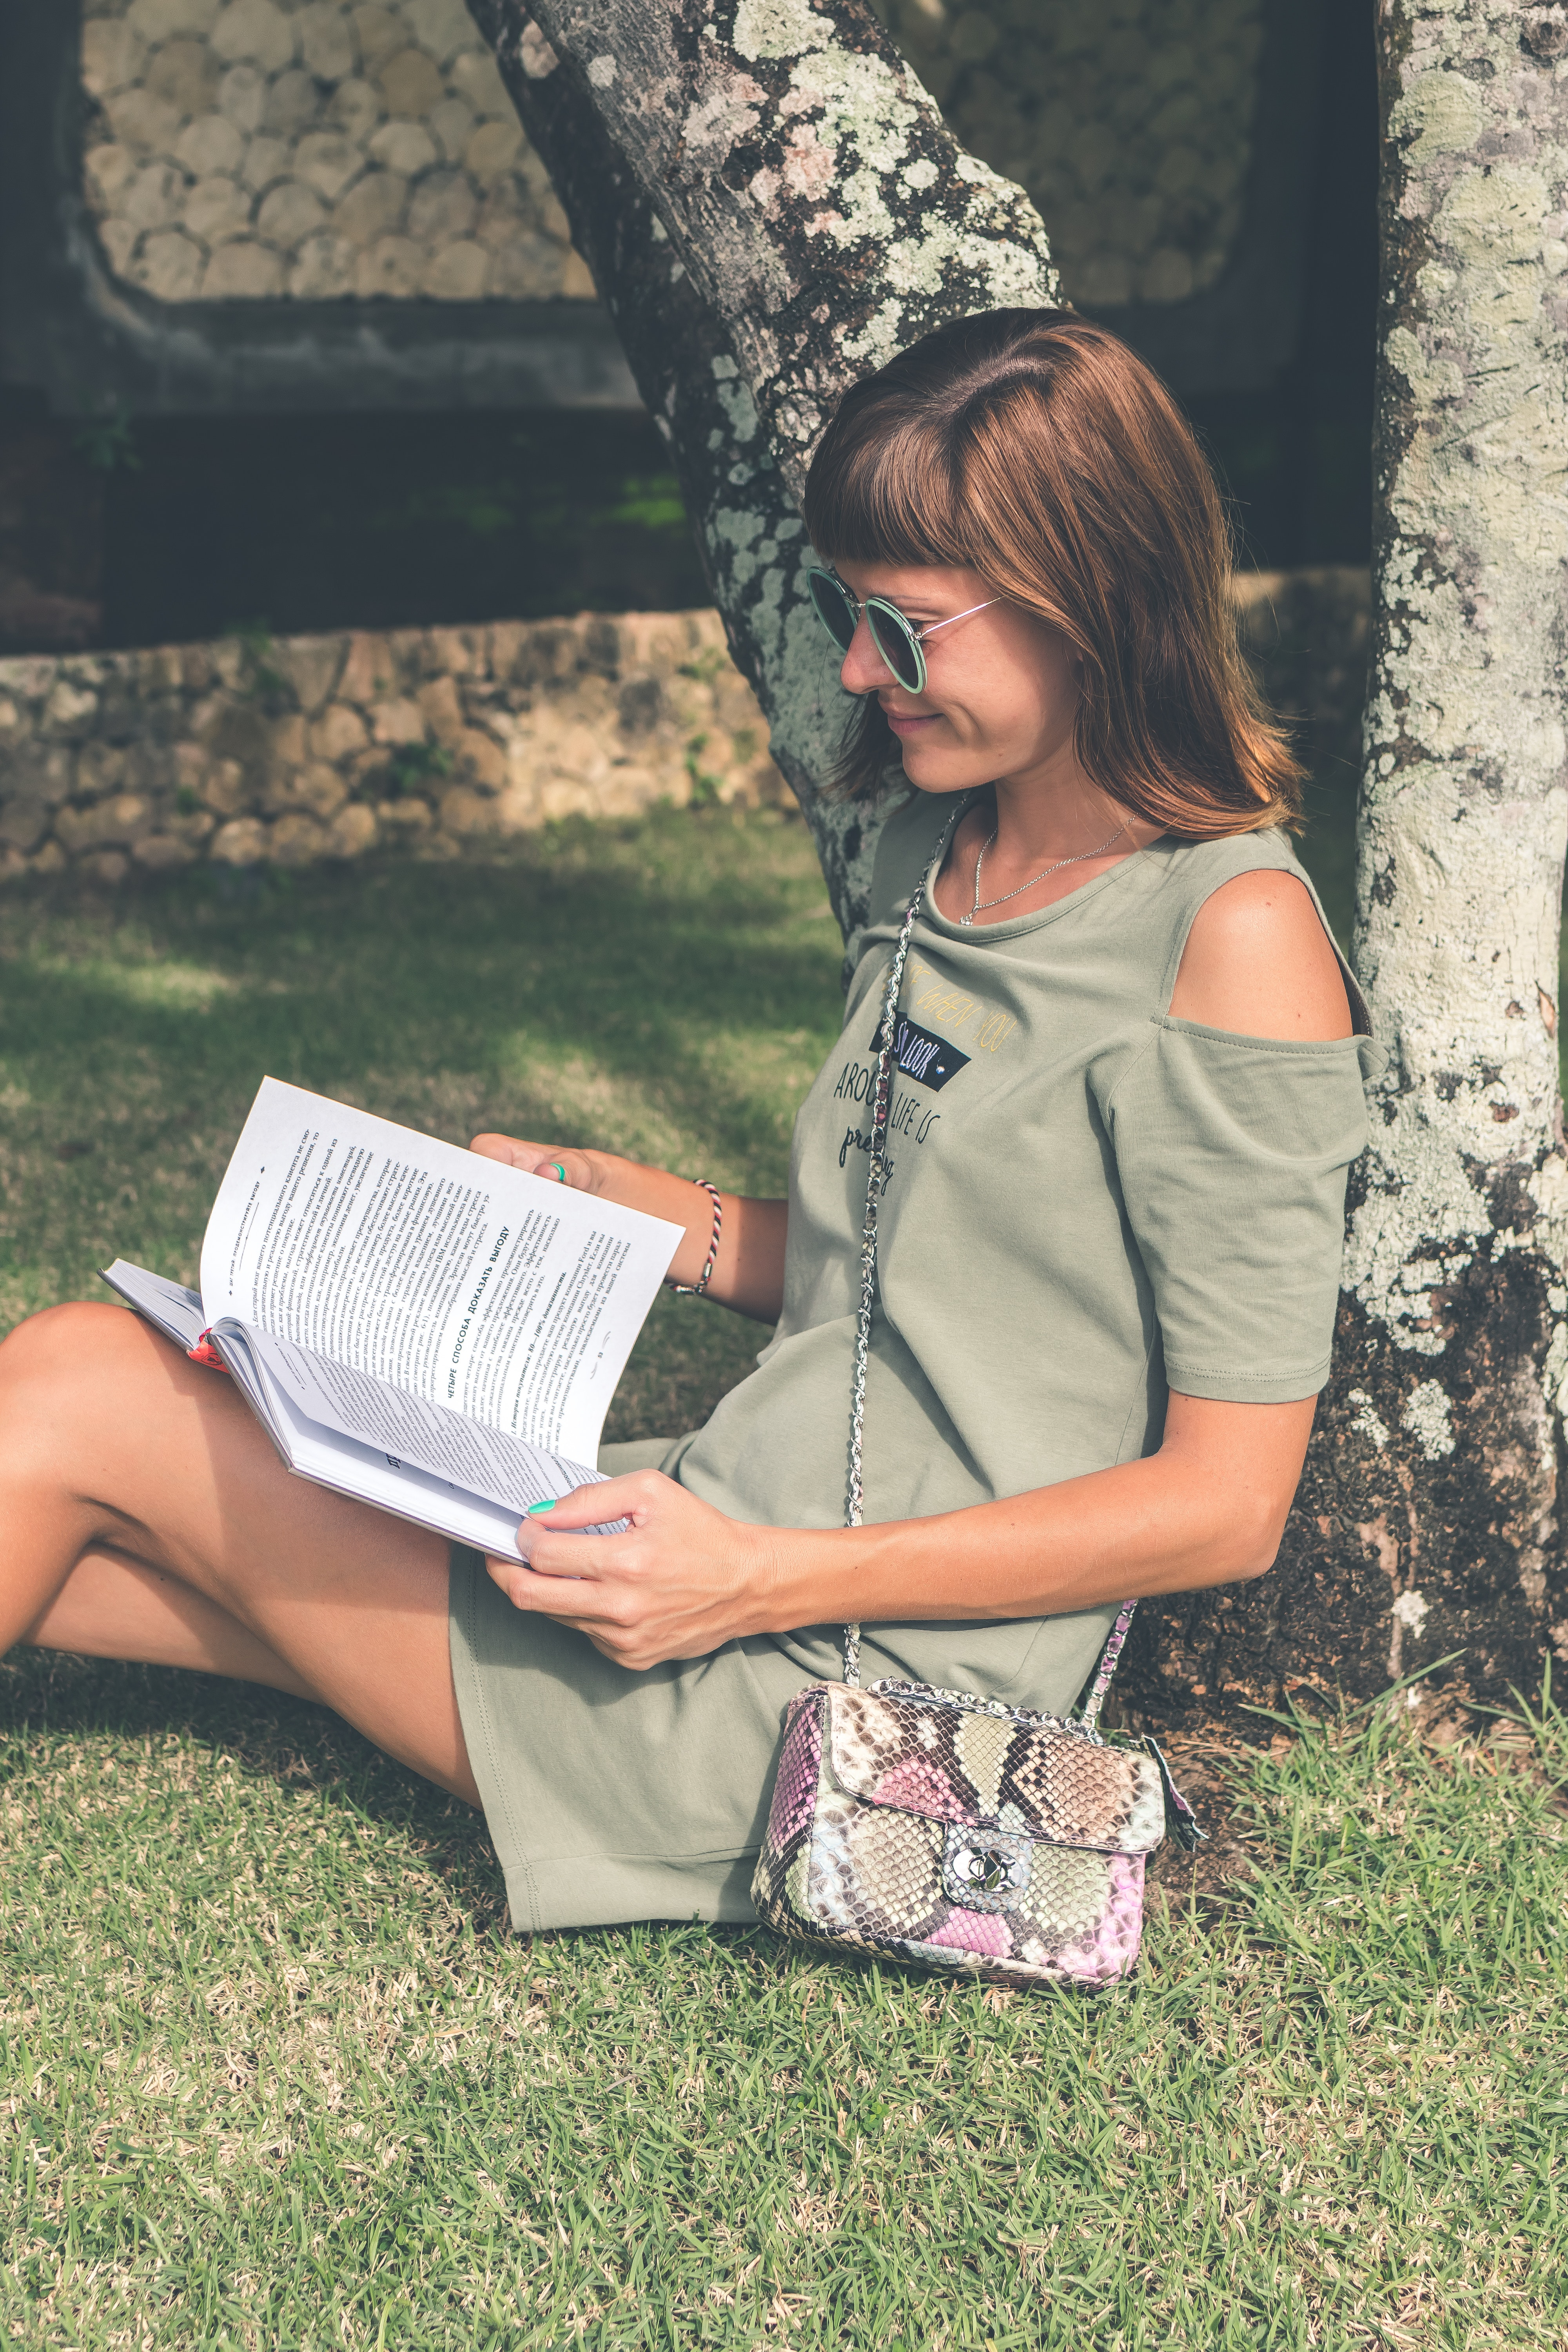 Woman in Gray Dress Reading Book at Daytime, Park, Young, Woman, White, HQ Photo